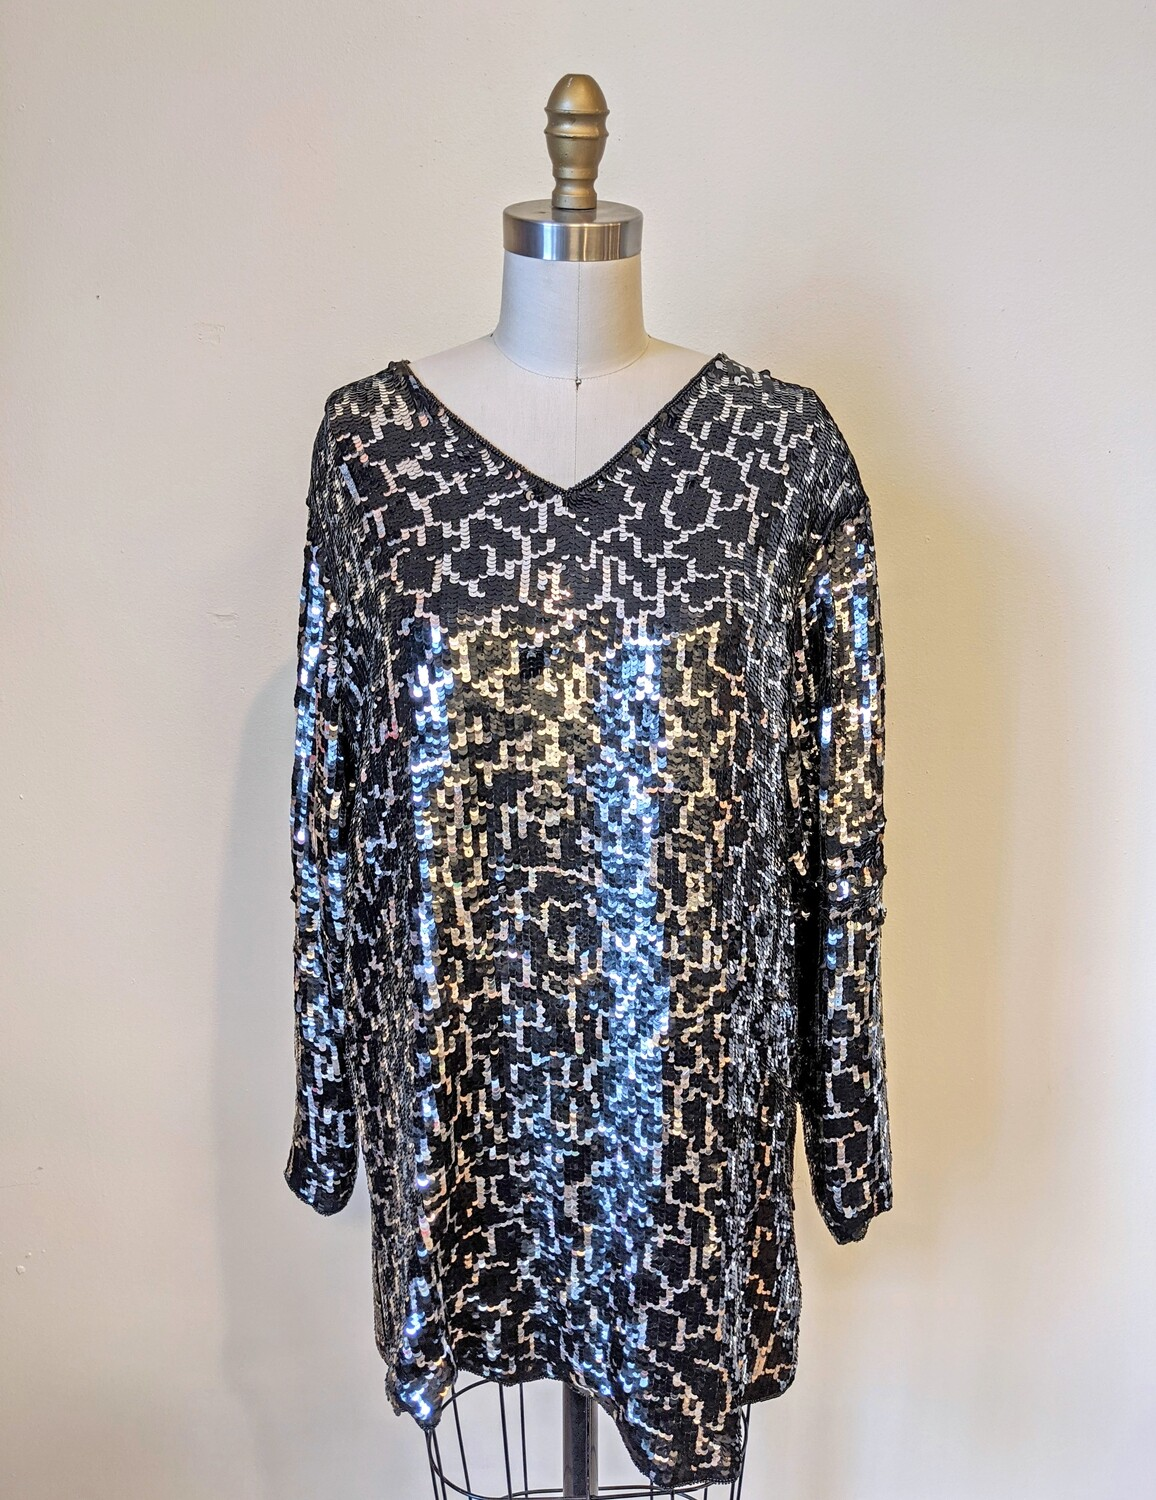 Shimmery Black & Silver 1980s Dominique Tunic